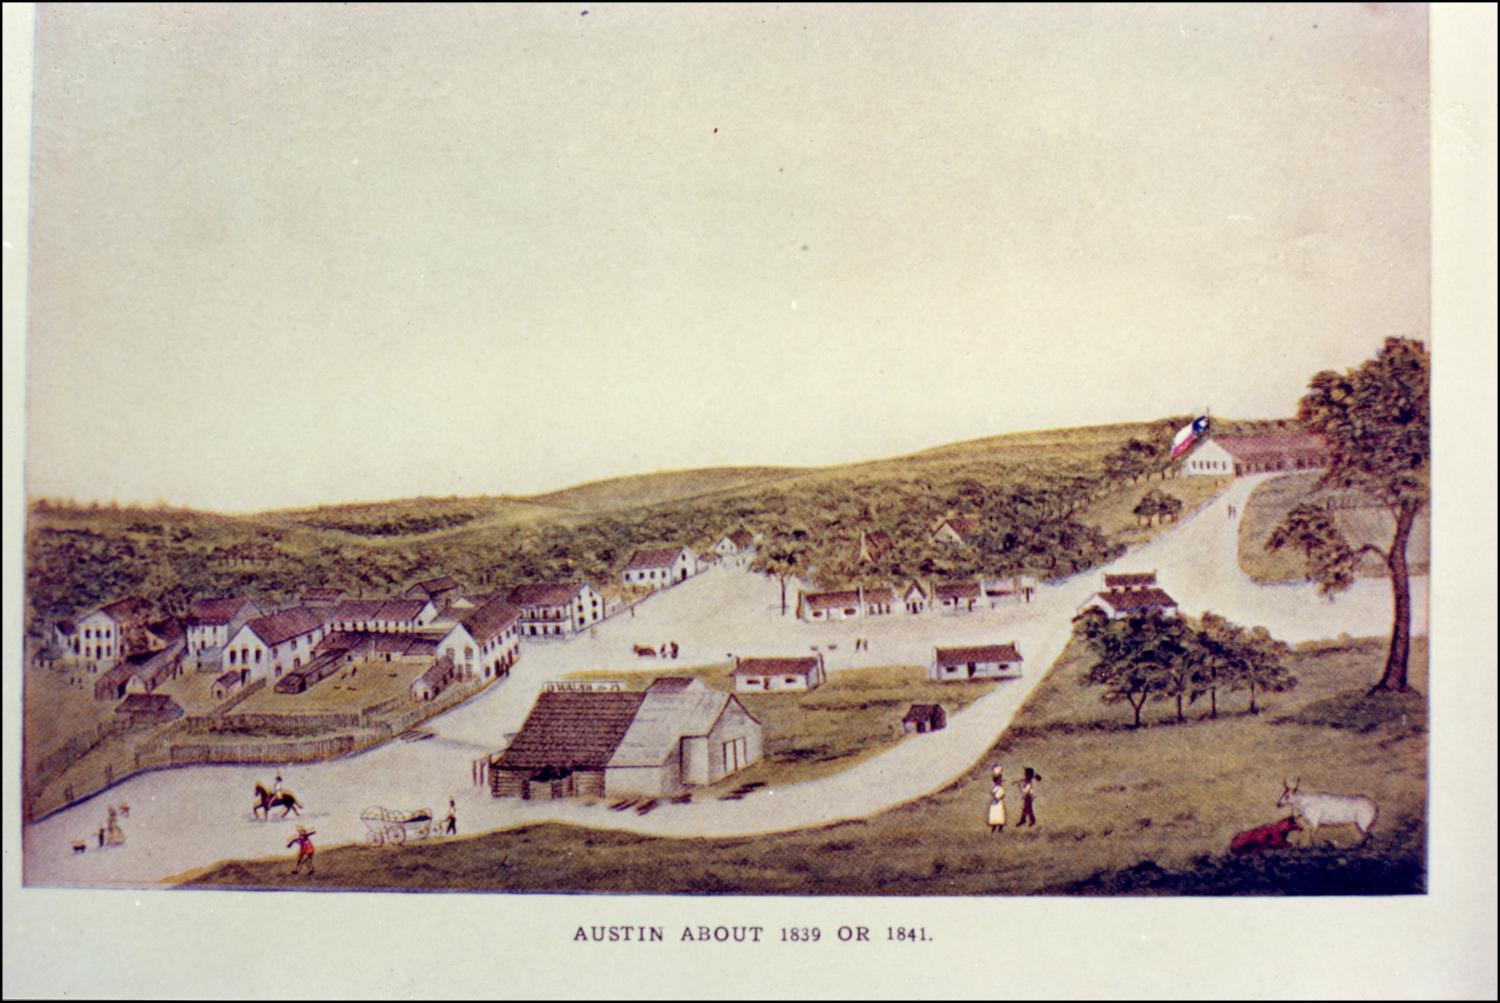 Austin About 1839 or 1841.                                                                                                      [Sequence #]: 1 of 1